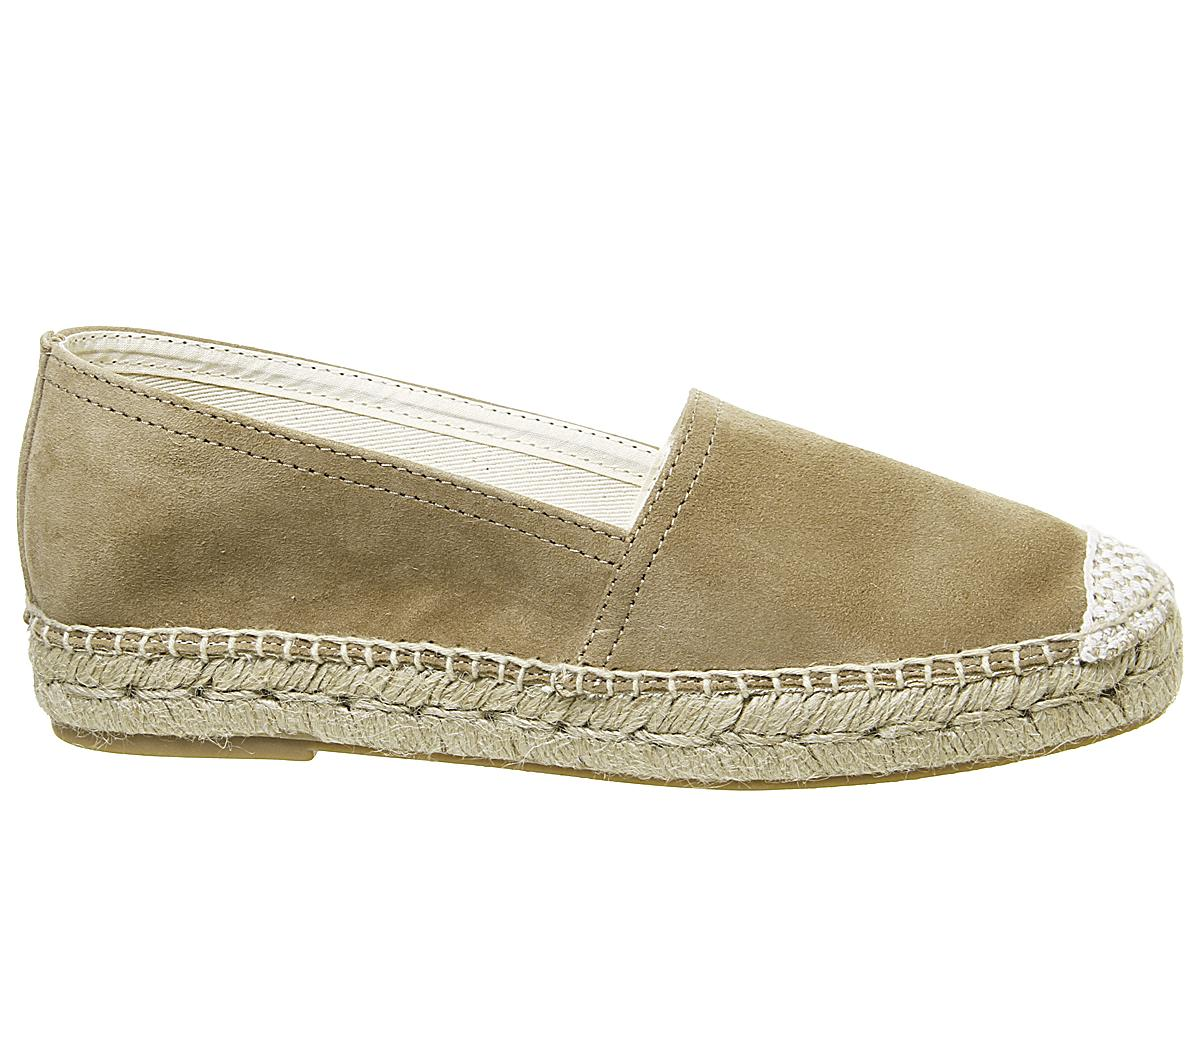 Fulfilled Square Toe Espadrilles